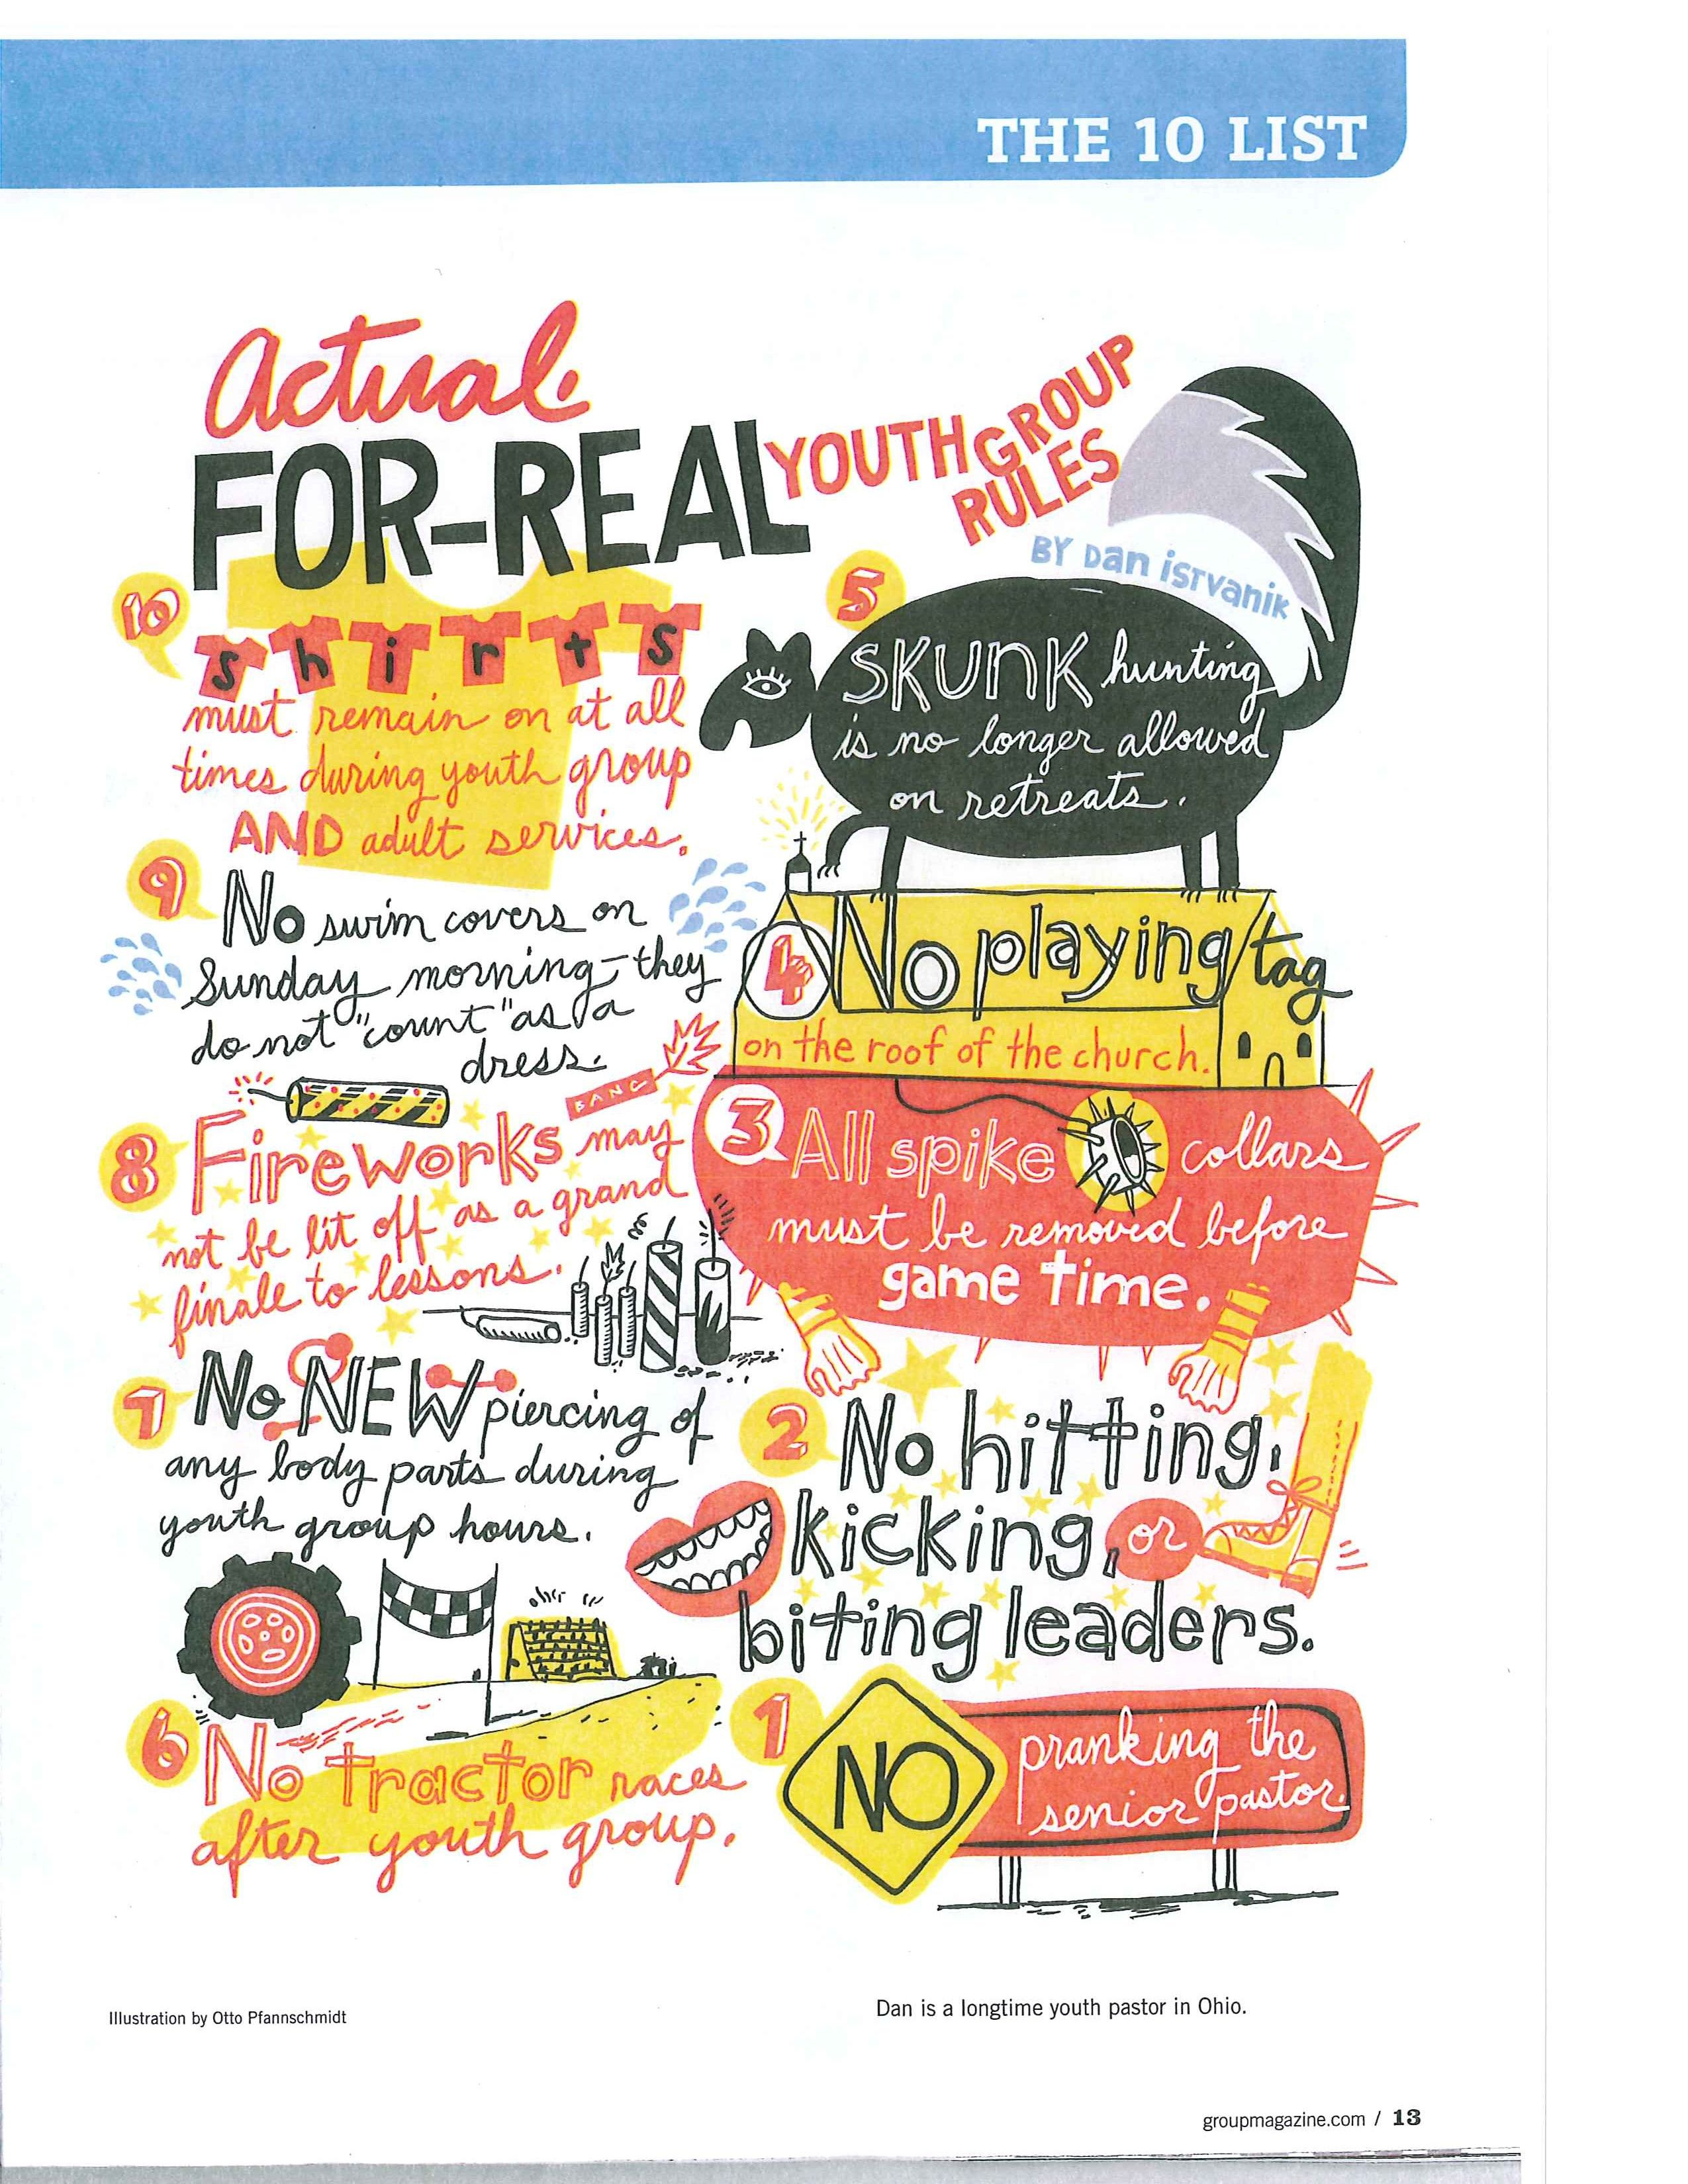 Top 10 Real Youth Group Rules I Like The Way This